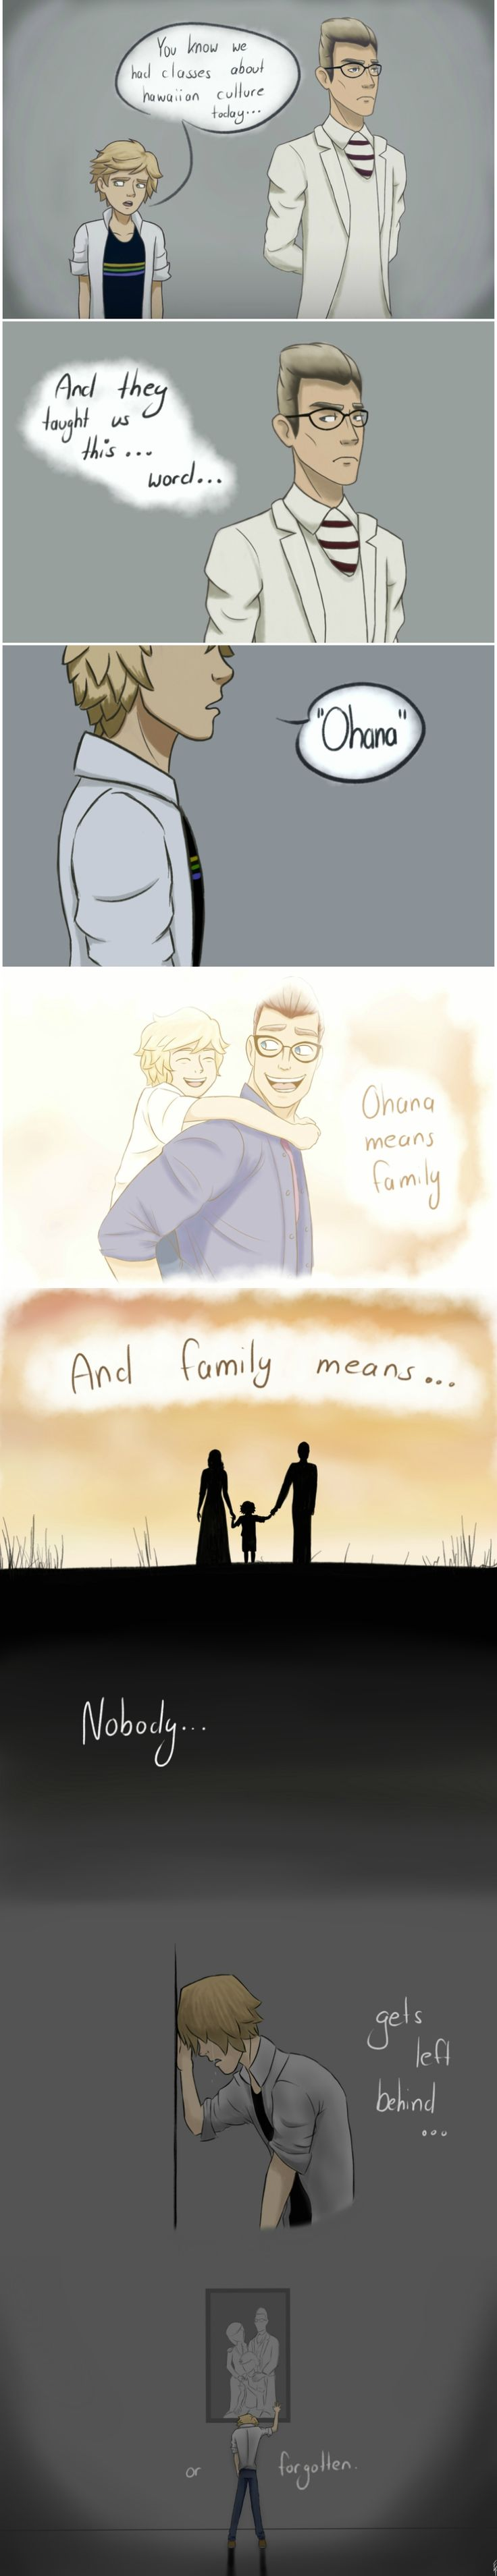 O que significa background image - Ohana Means Family By Perugirl199 On Deviantart